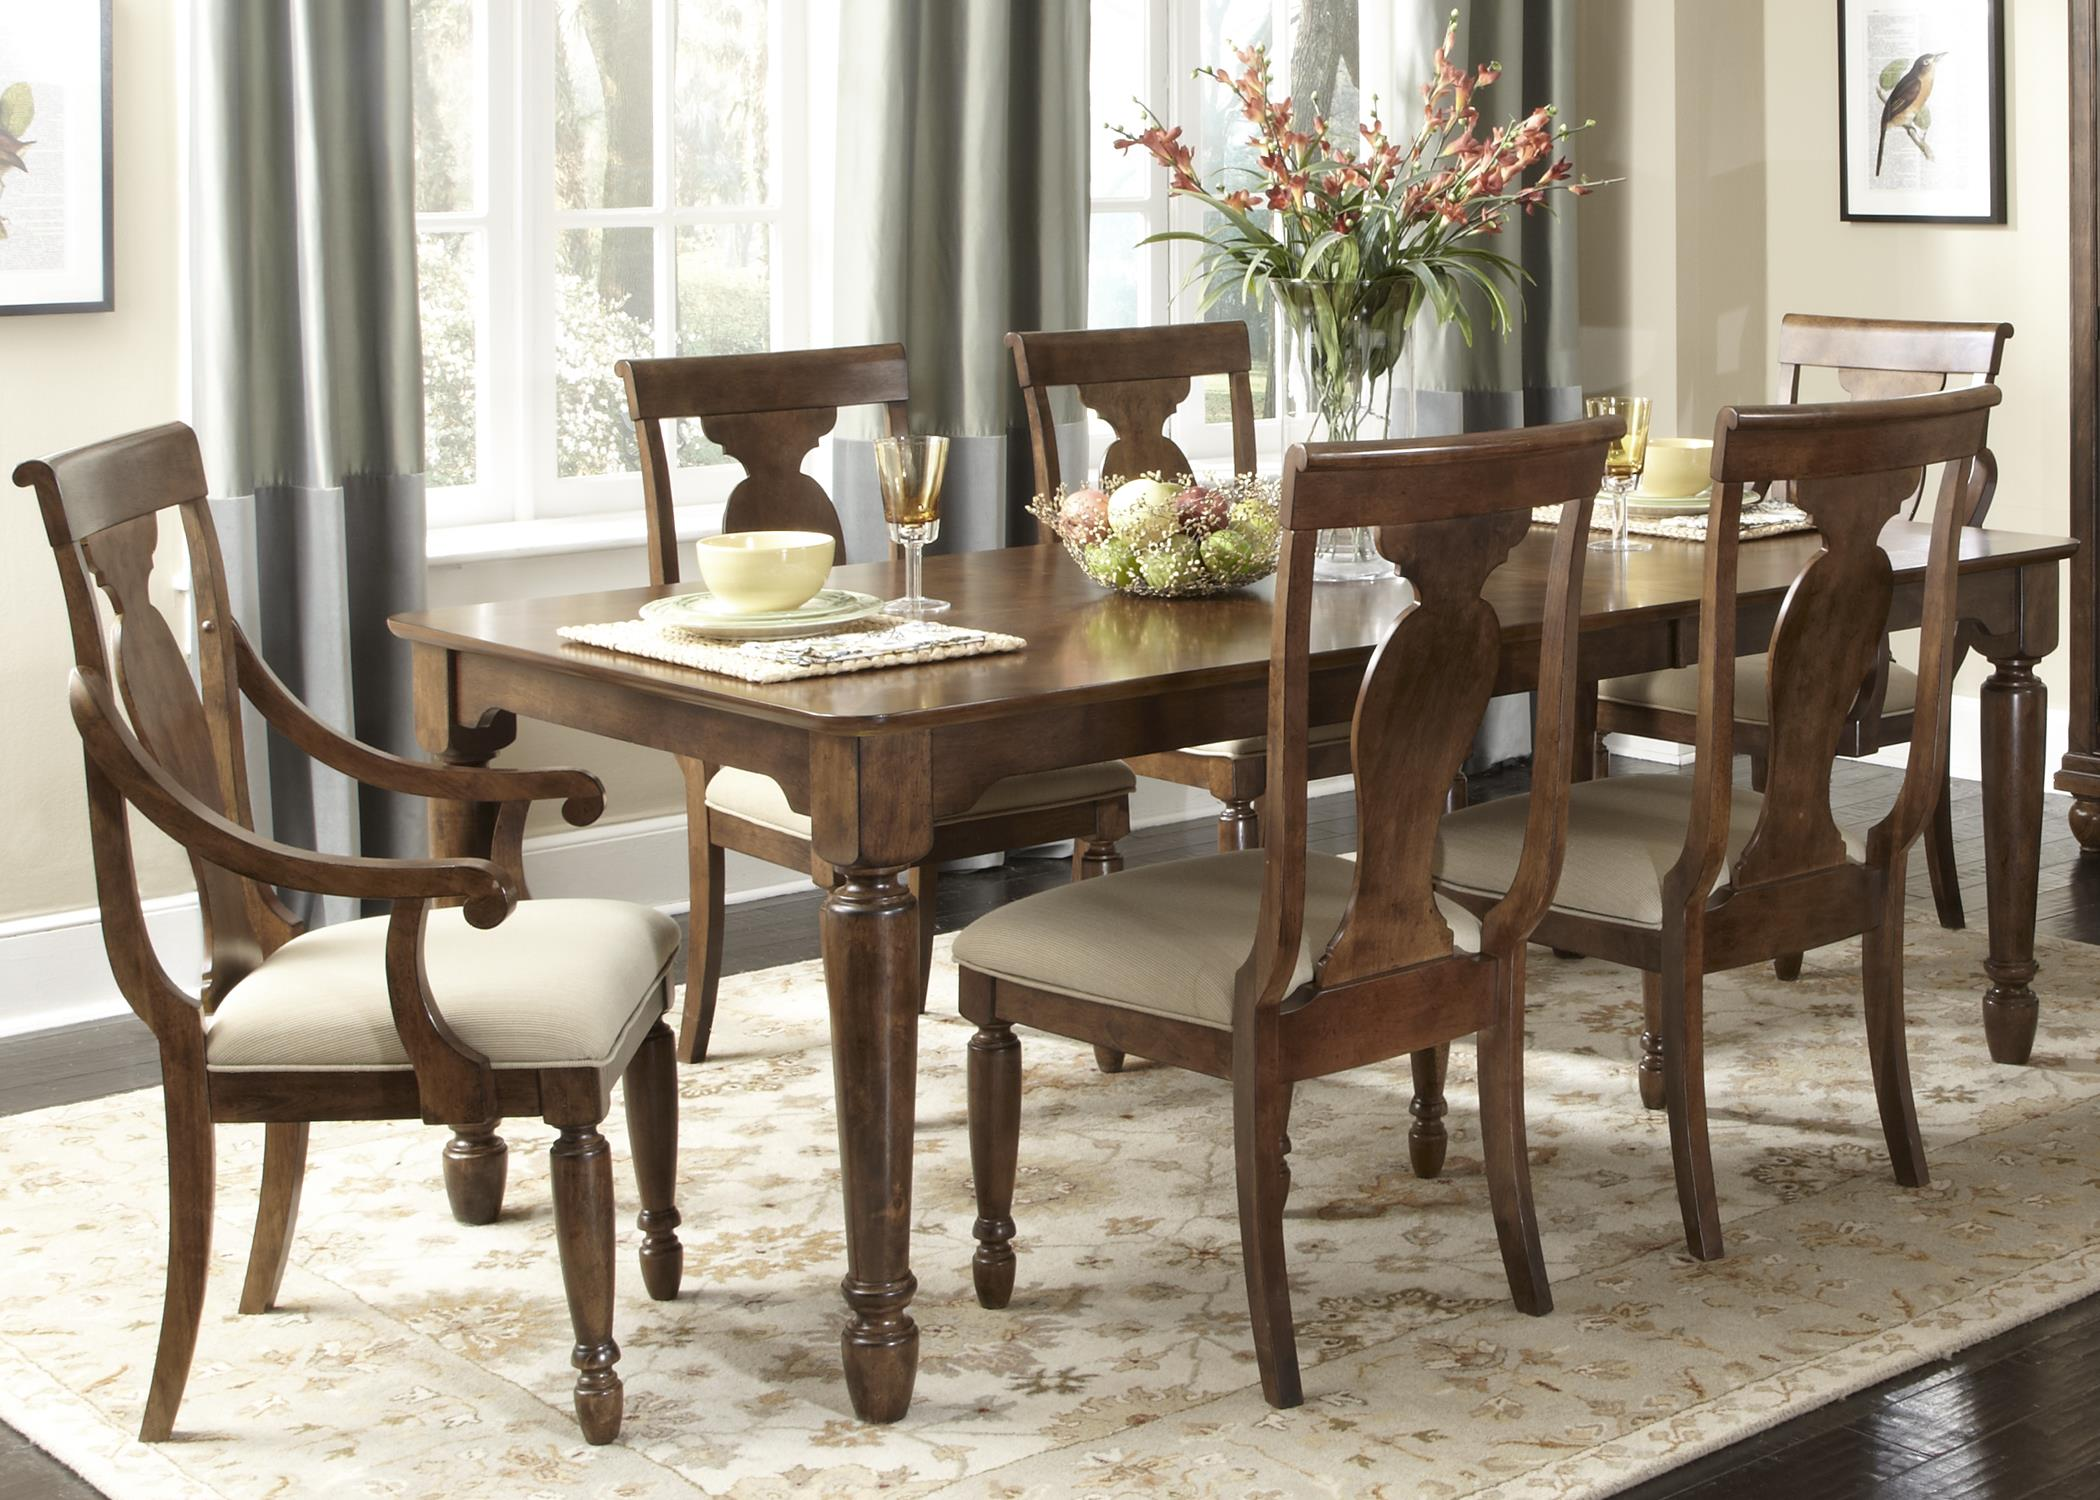 Rectangular leg dining table with leaf by liberty for Rectangular dining room tables with leaves